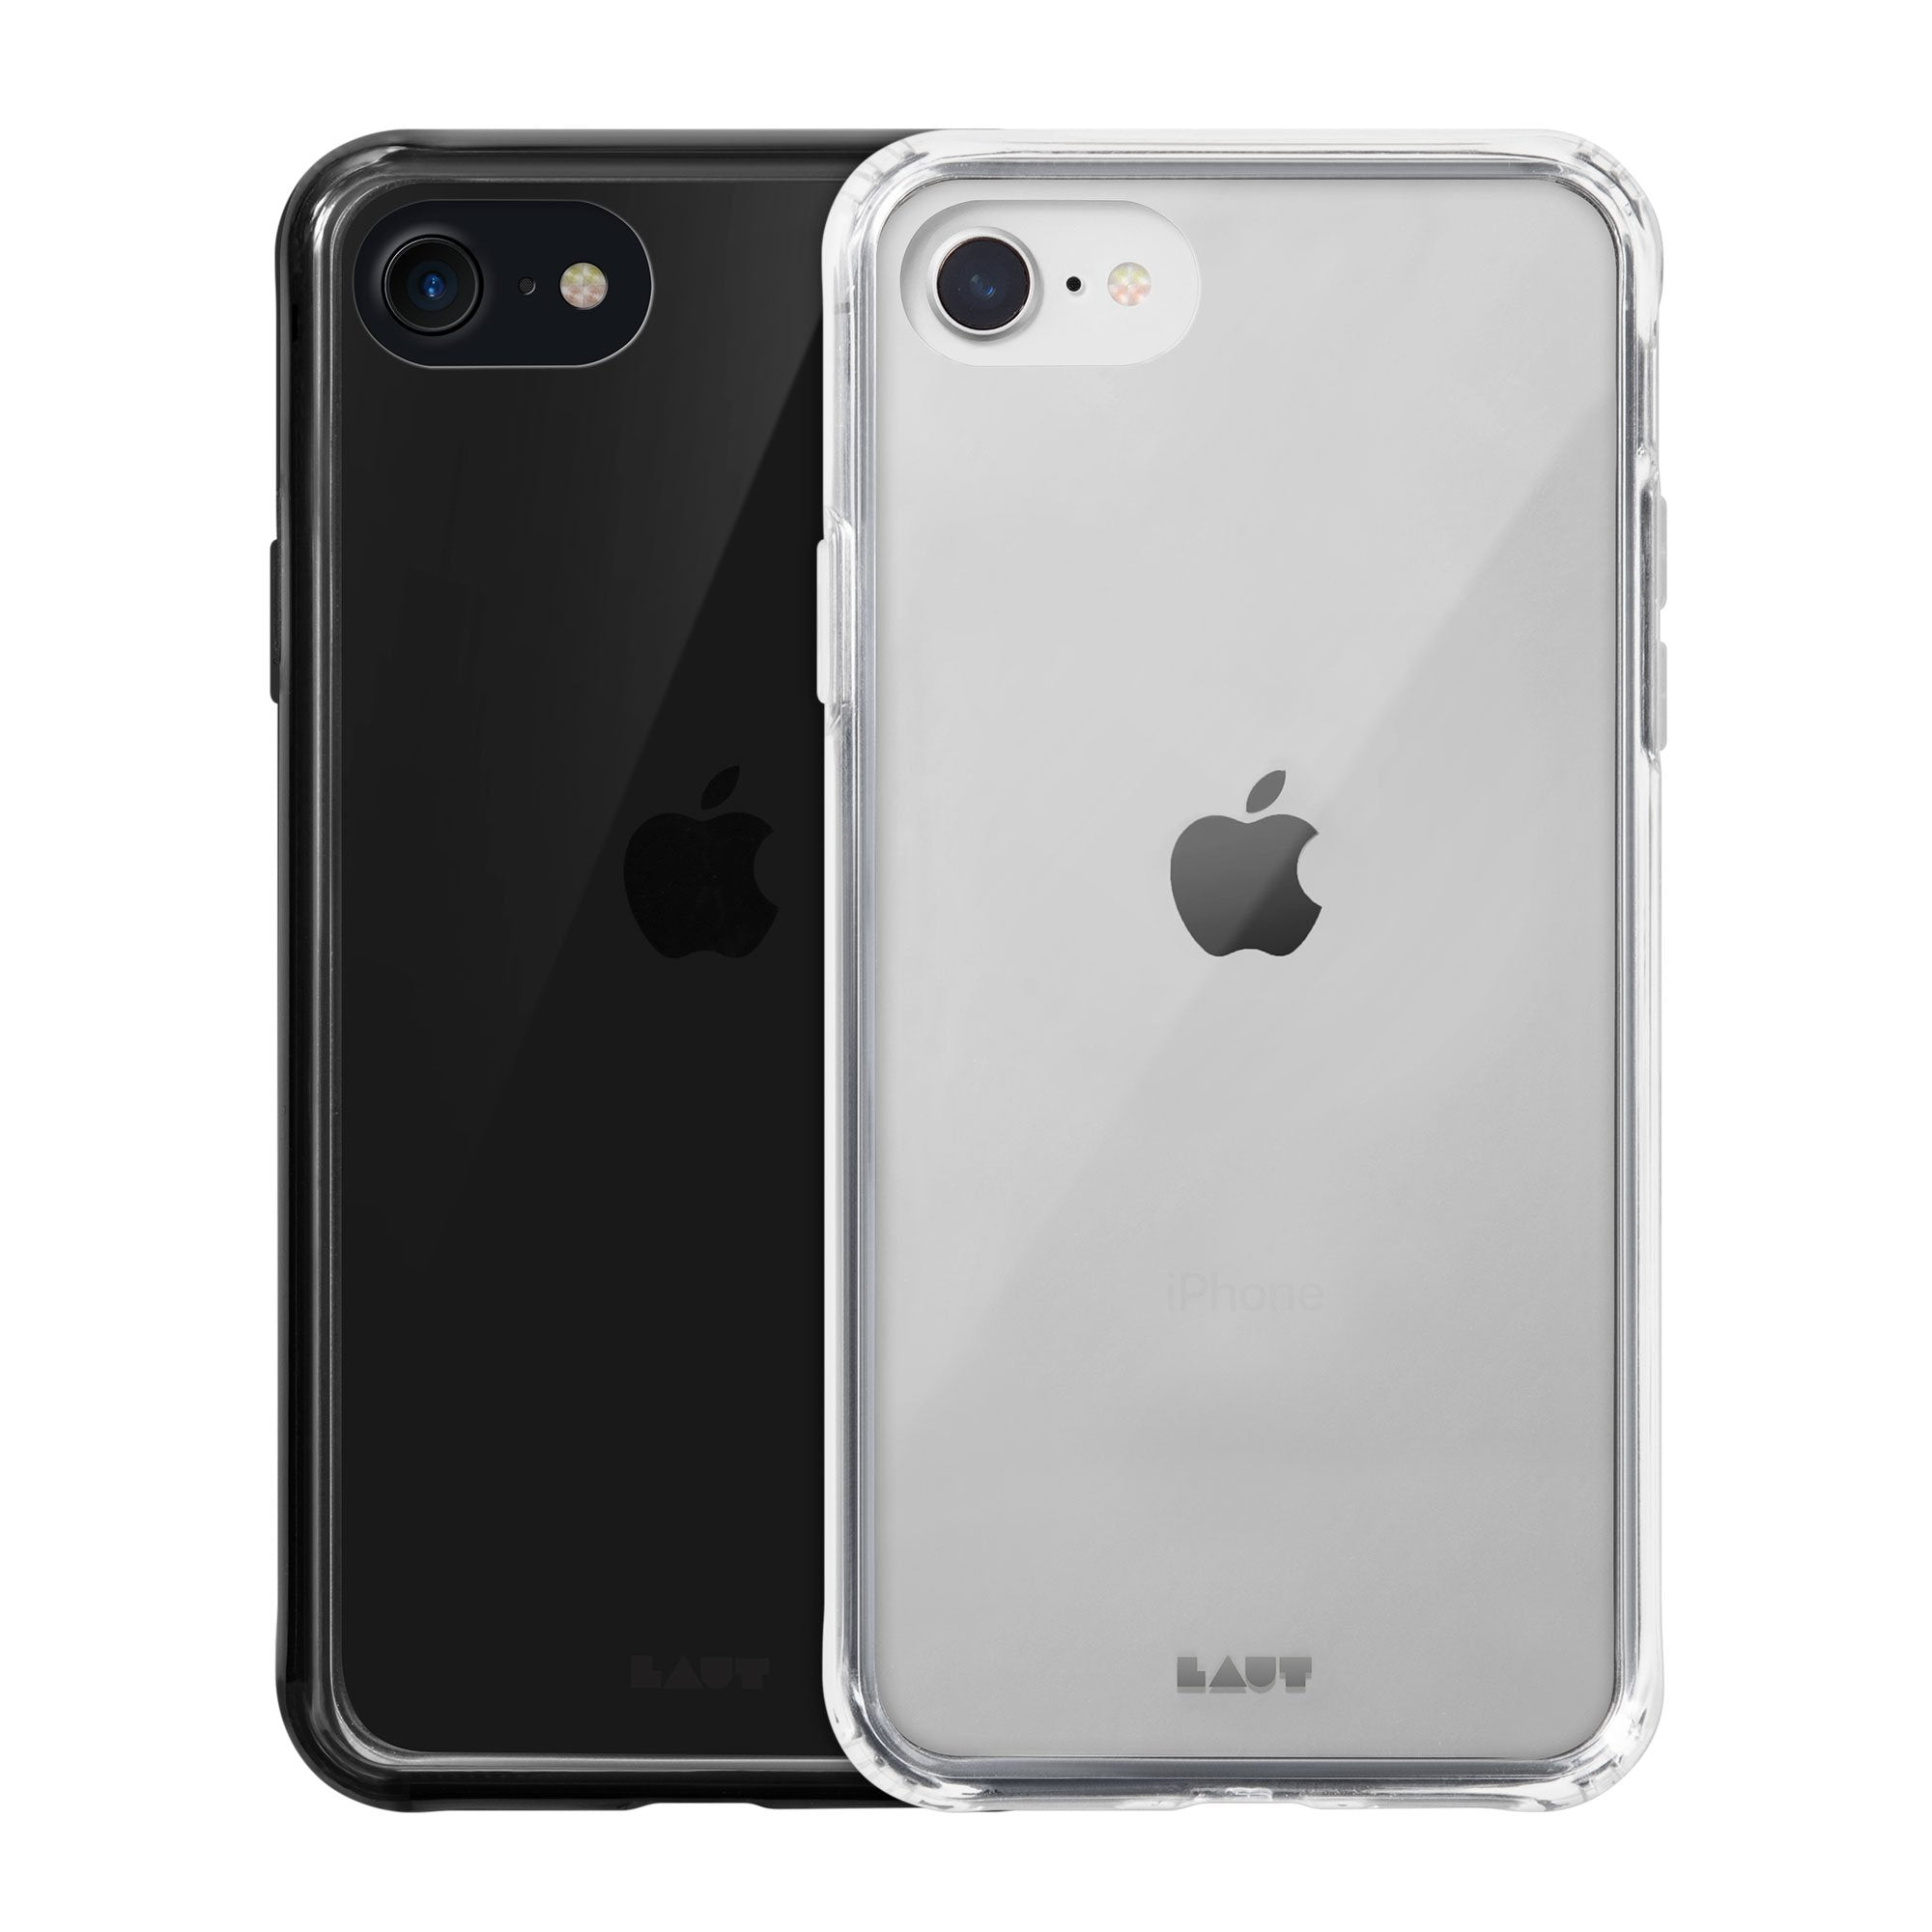 Crystal-X case for iPhone SE 2020 / iPhone 8/7